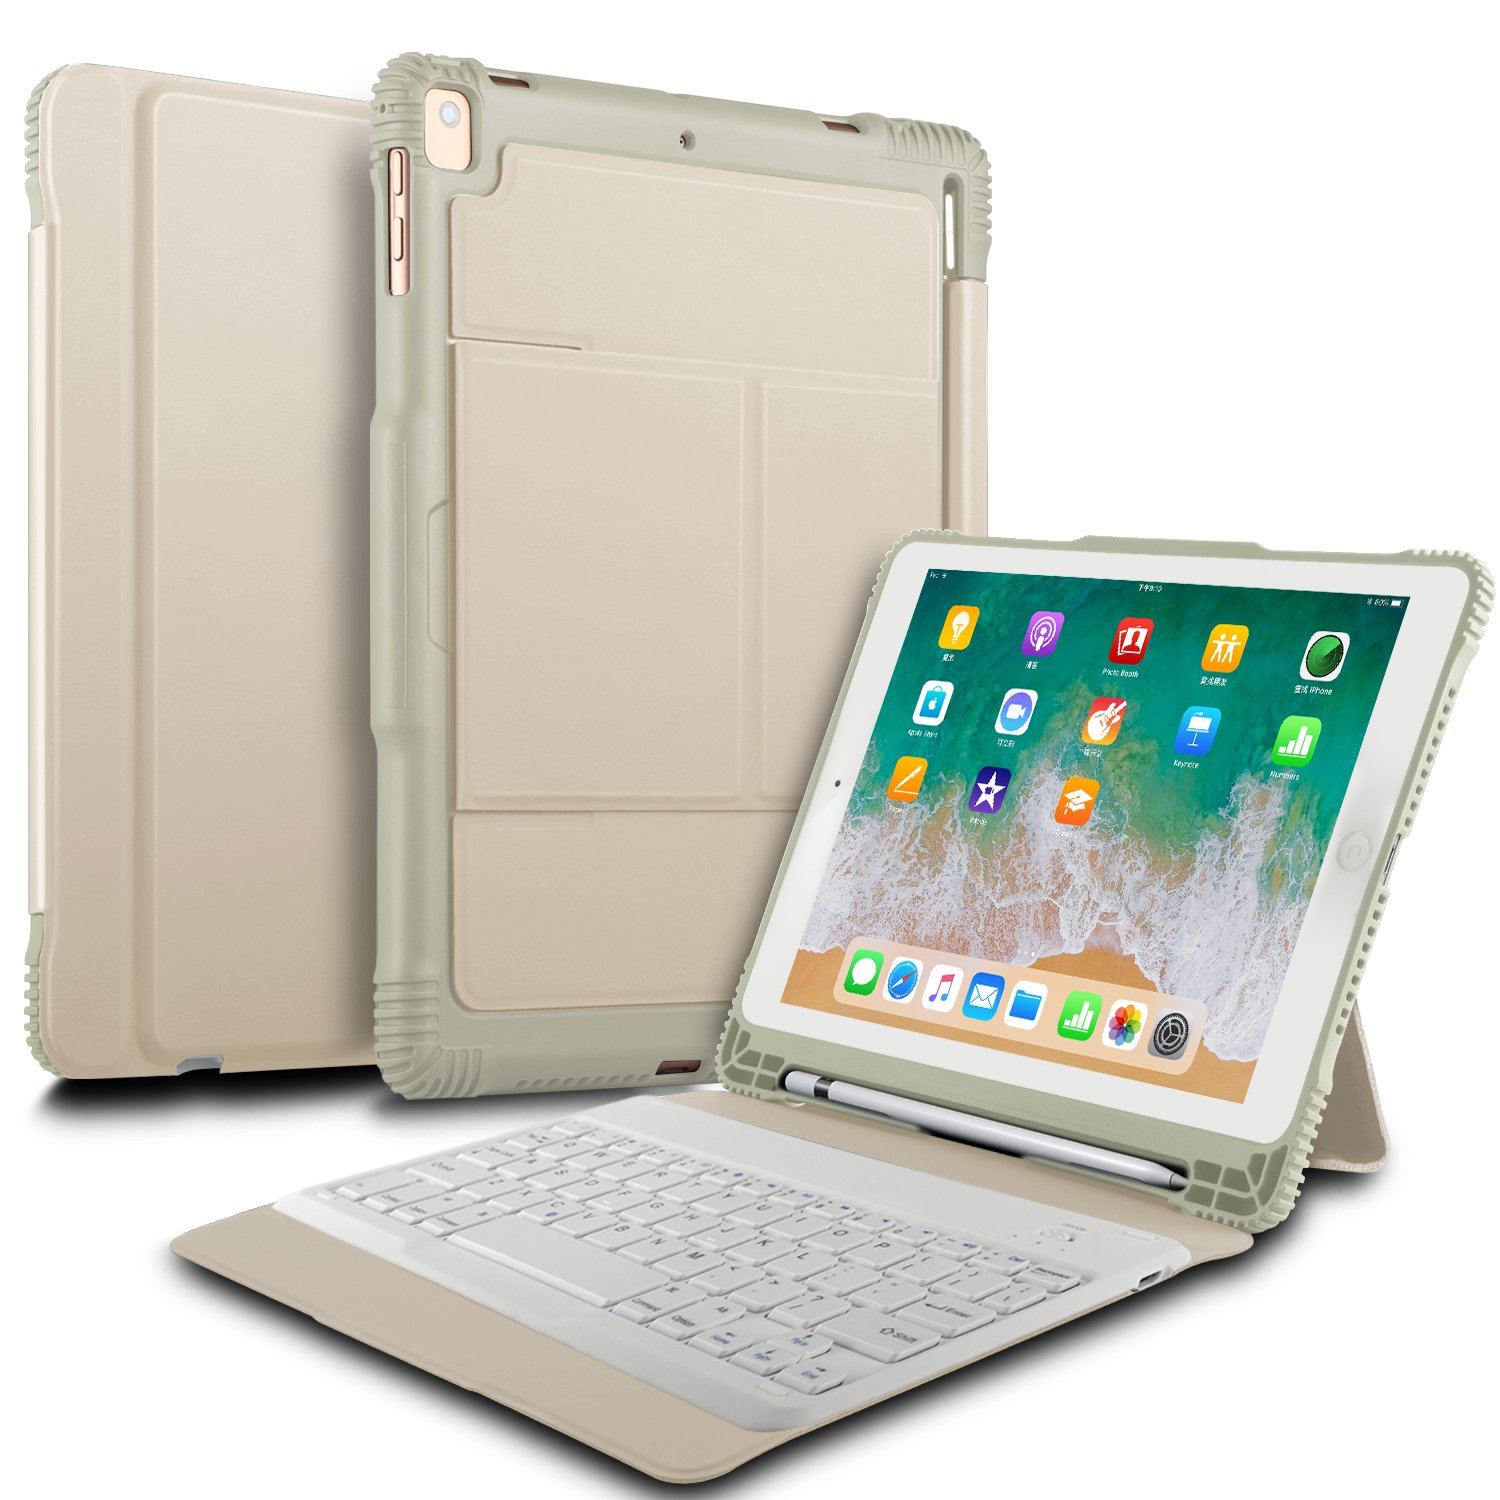 IVSO New iPad 9.7 2018 Case with Keyboard, Ultra-Slim Portable Detachable Wireless Keyboard Case with Stylus Holder for New iPad 9.7 2018/2017/iPad Pro 9.7/iPad Air 2/iPad Air Tablet (Gold)